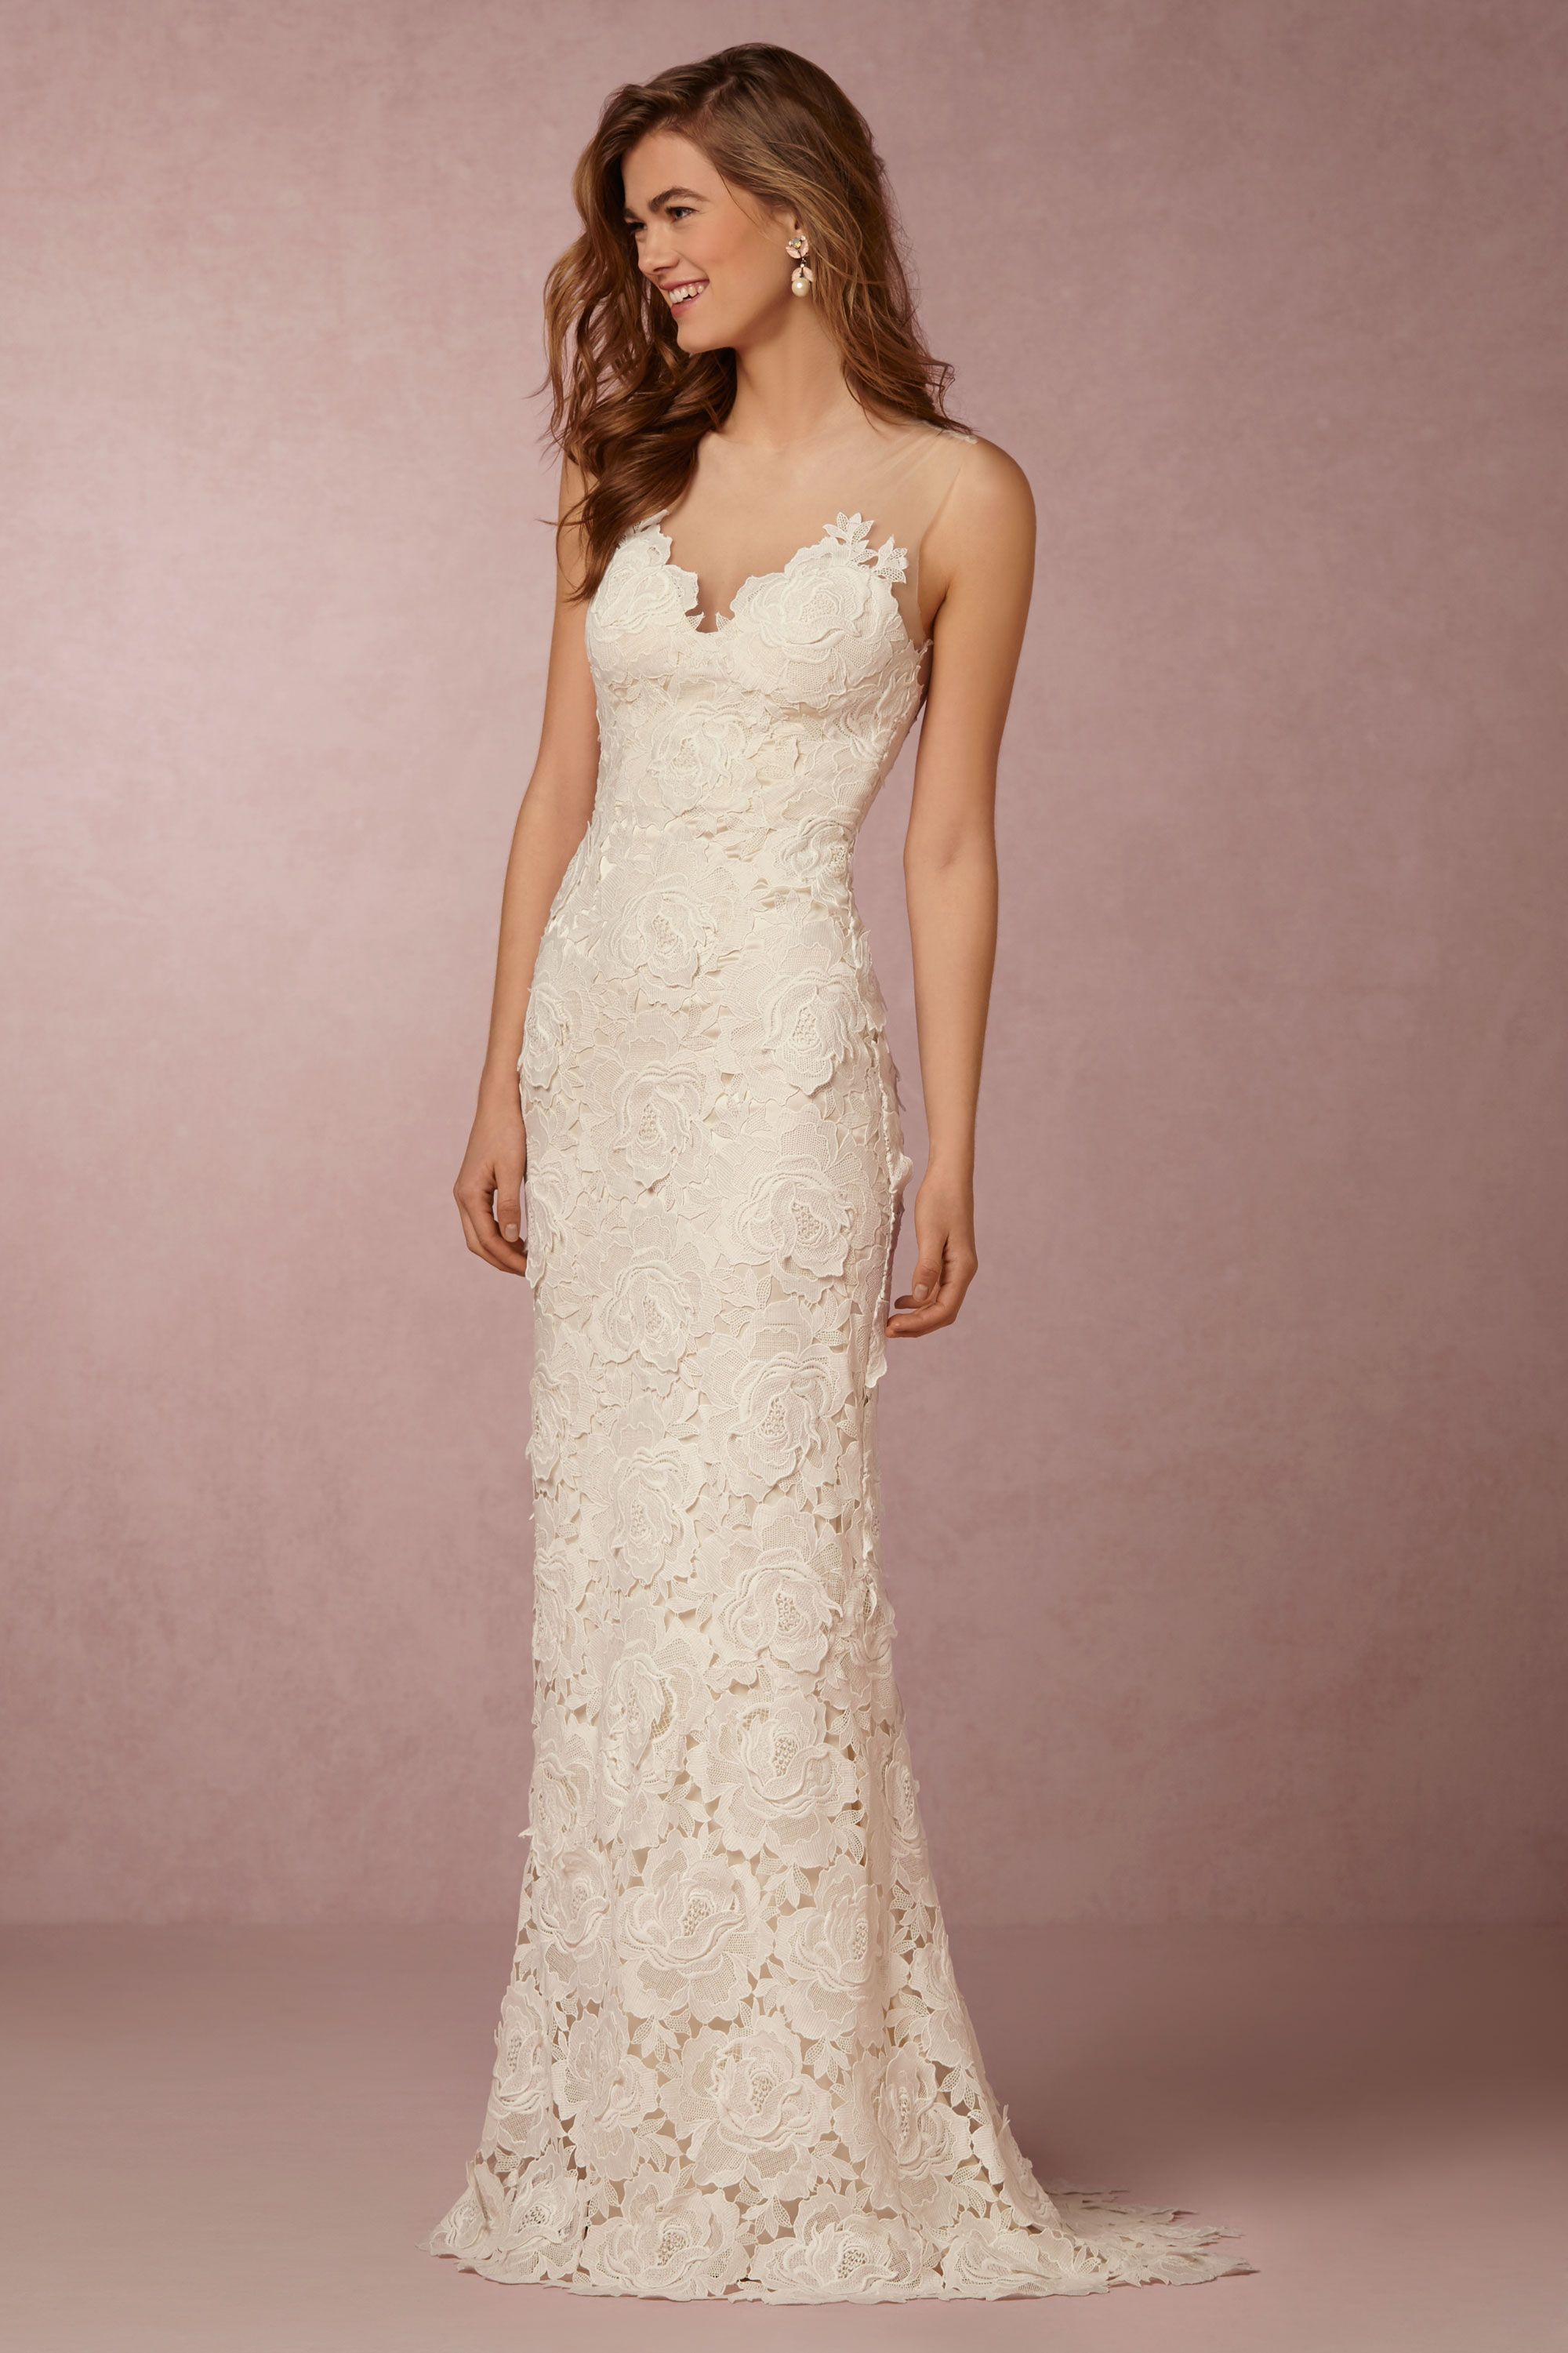 Lace wedding dress with a bold floral motif. The figure